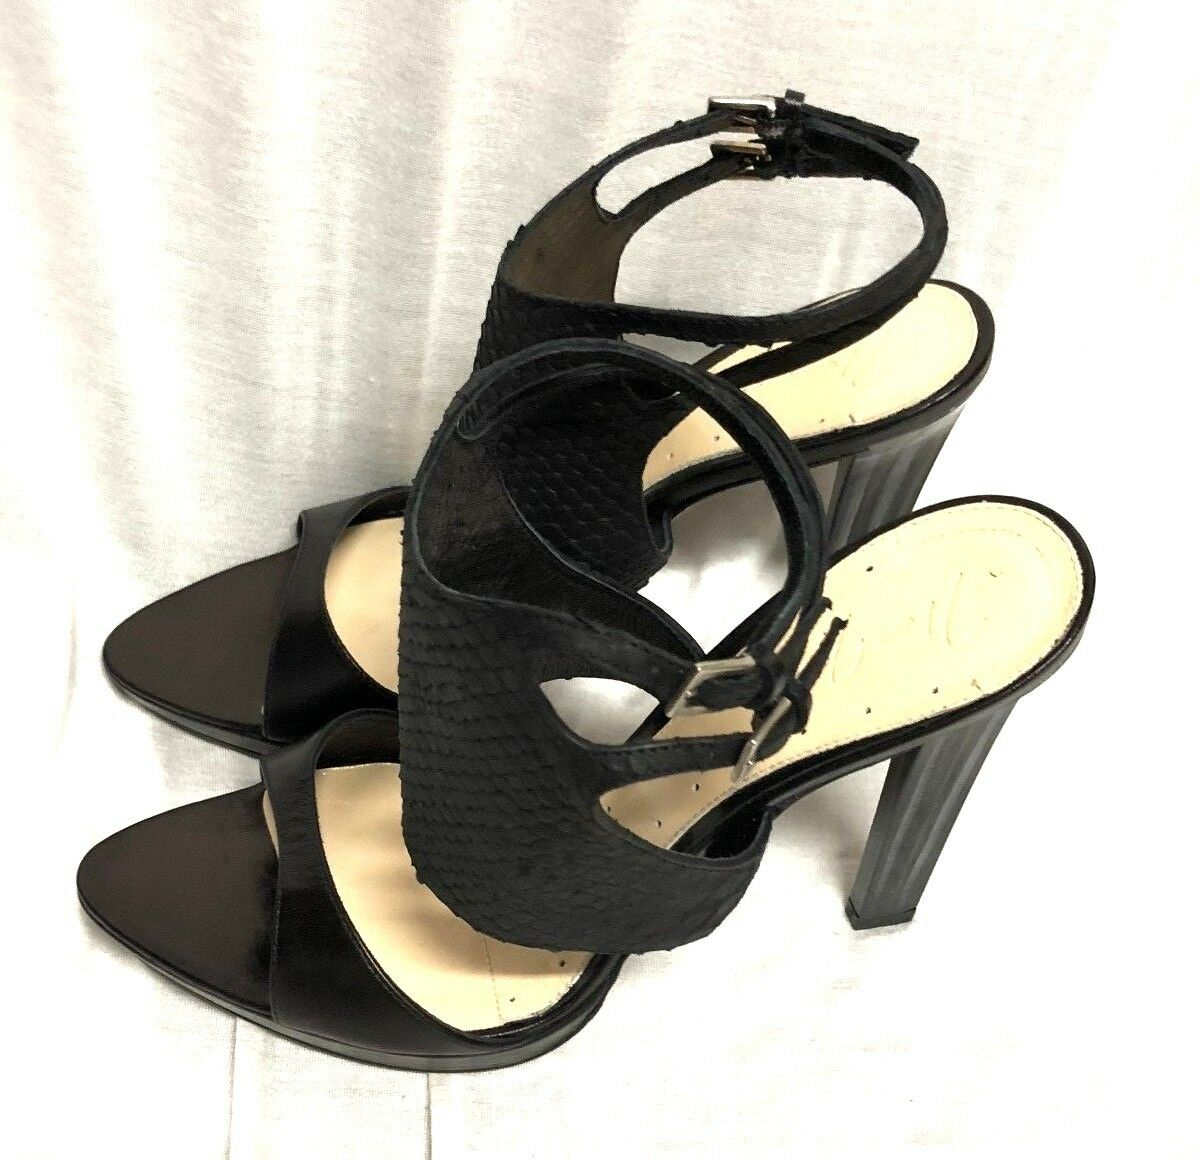 64ca4a31fe4 BCBG MAXAZRIA SHOES High Heel black Leather Size 9 39 nohjhj4128 ...